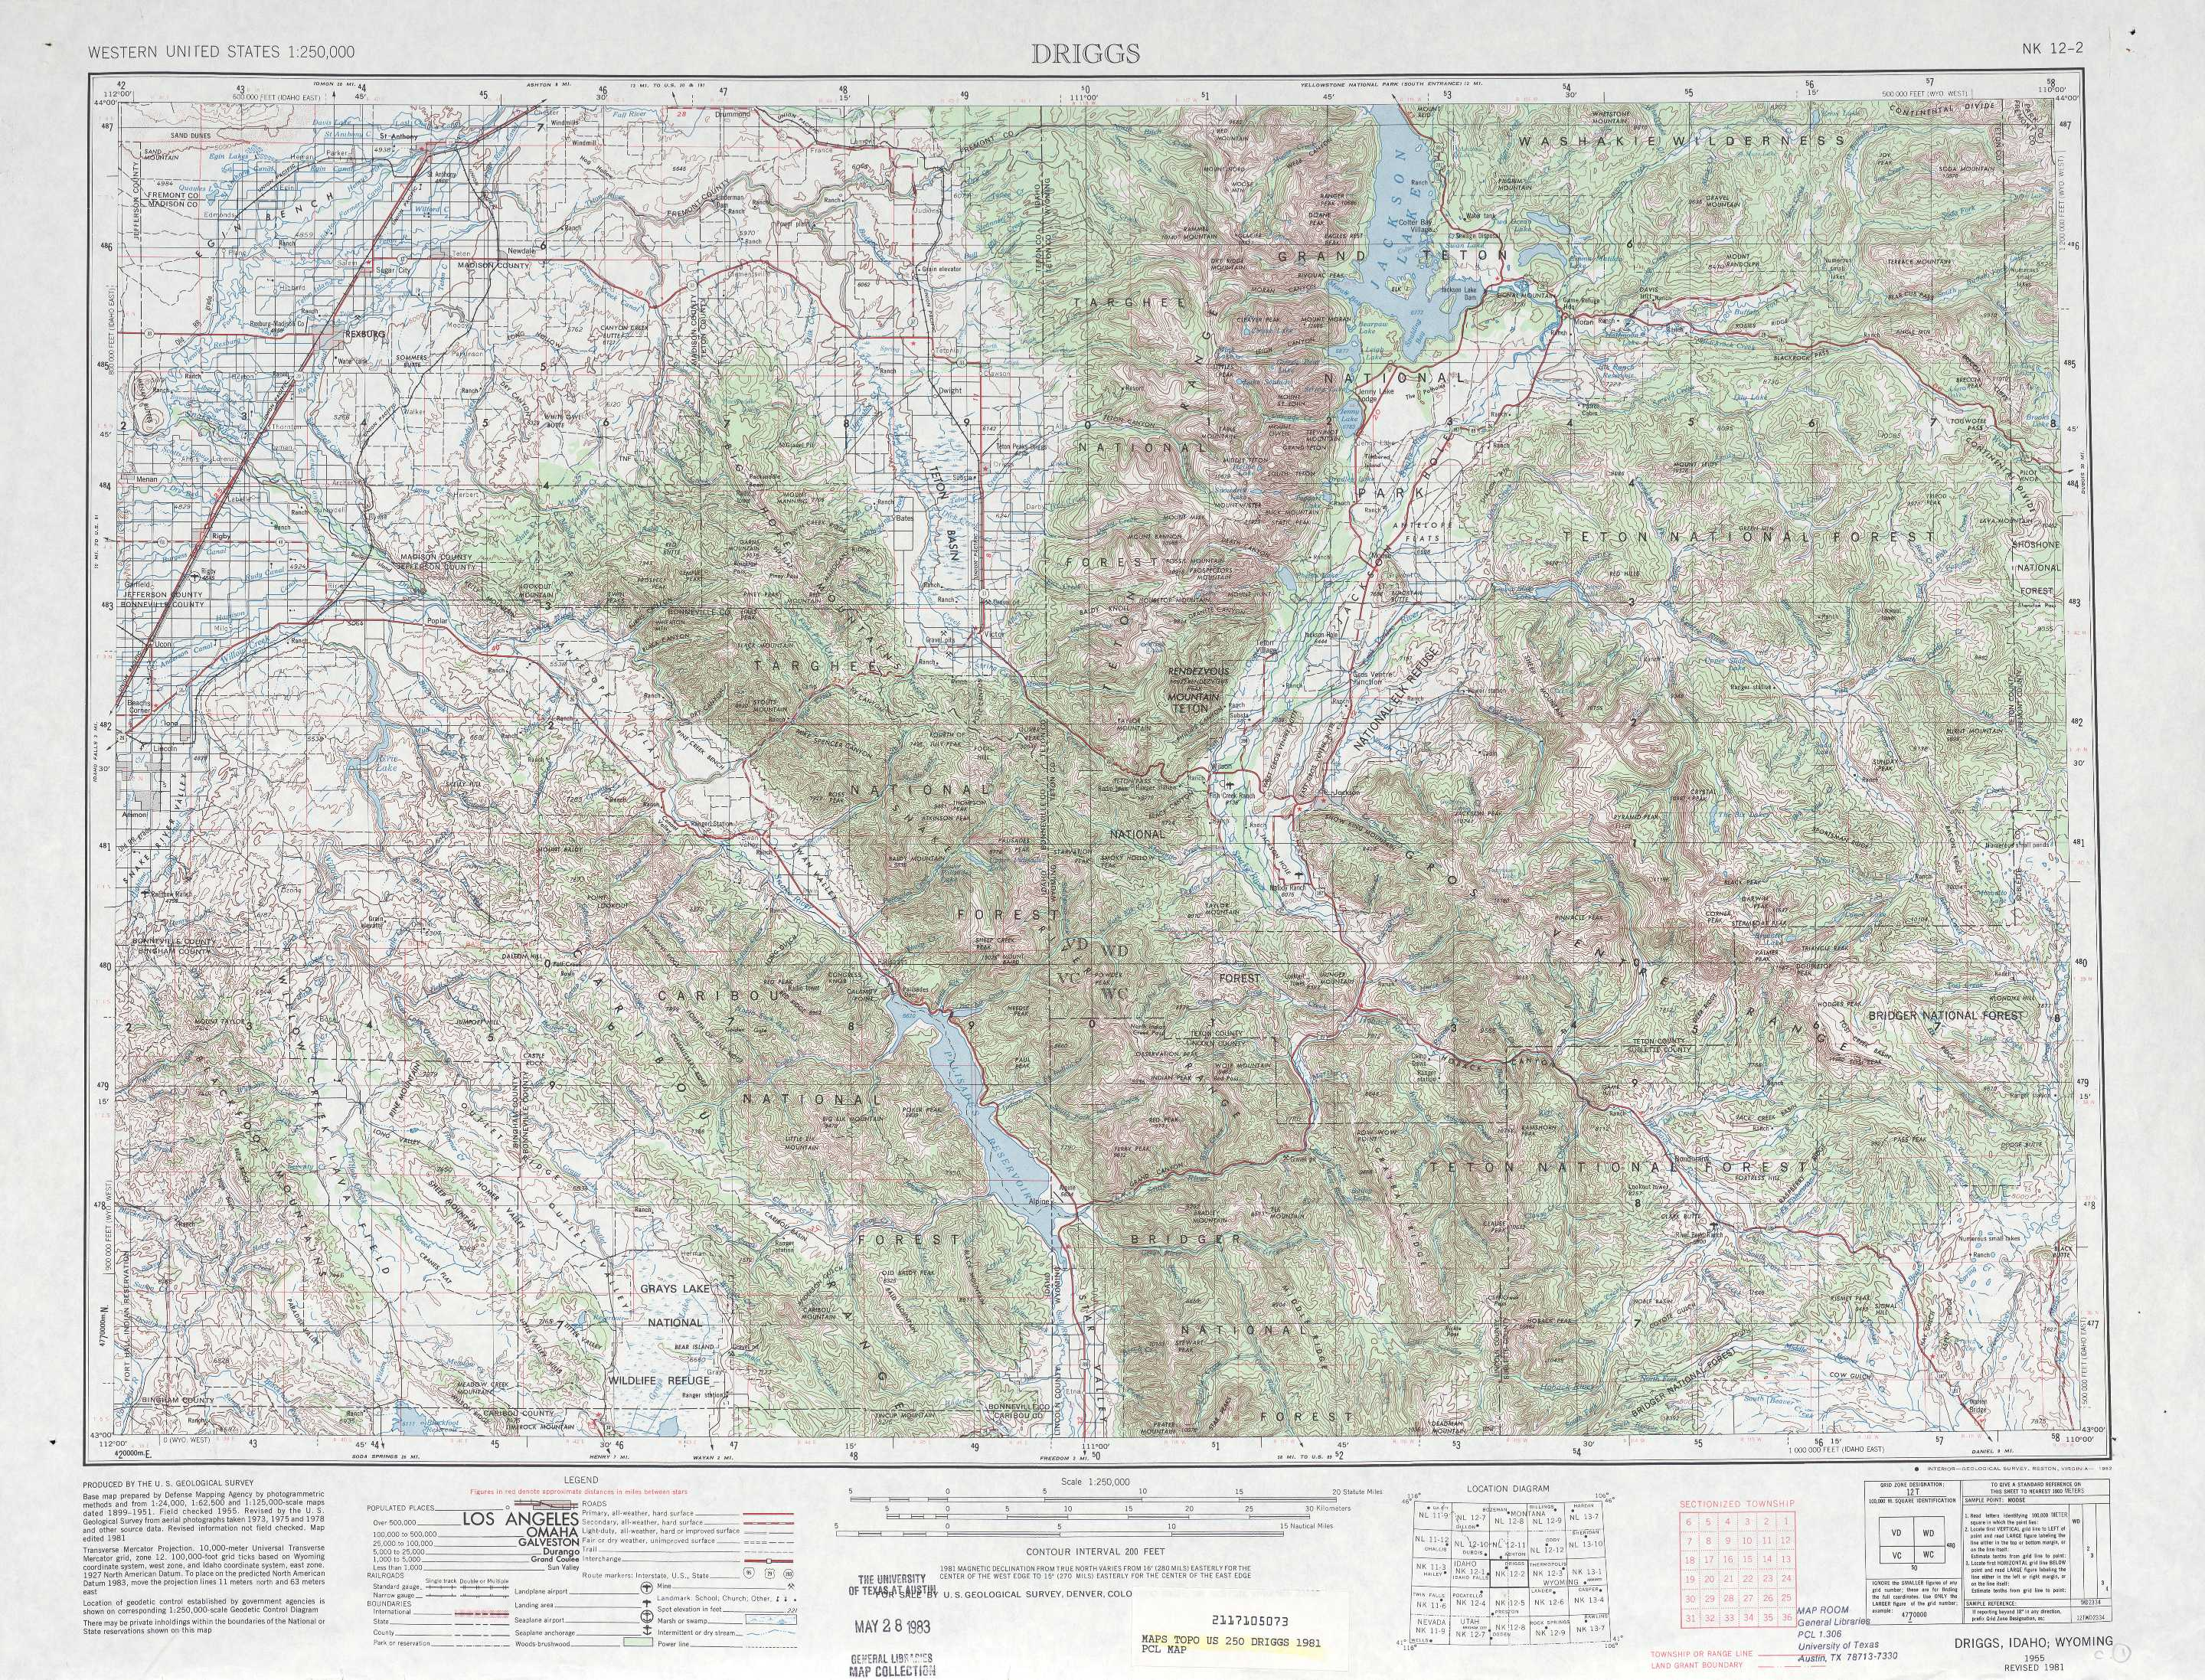 utah state map printable with 43110a1 on 43110a1 likewise Colorado Fourteeners Map Poster furthermore City Map besides Southwest Road Trip Roadside Attractions likewise Photos 2018 Nba All Star Saturday.